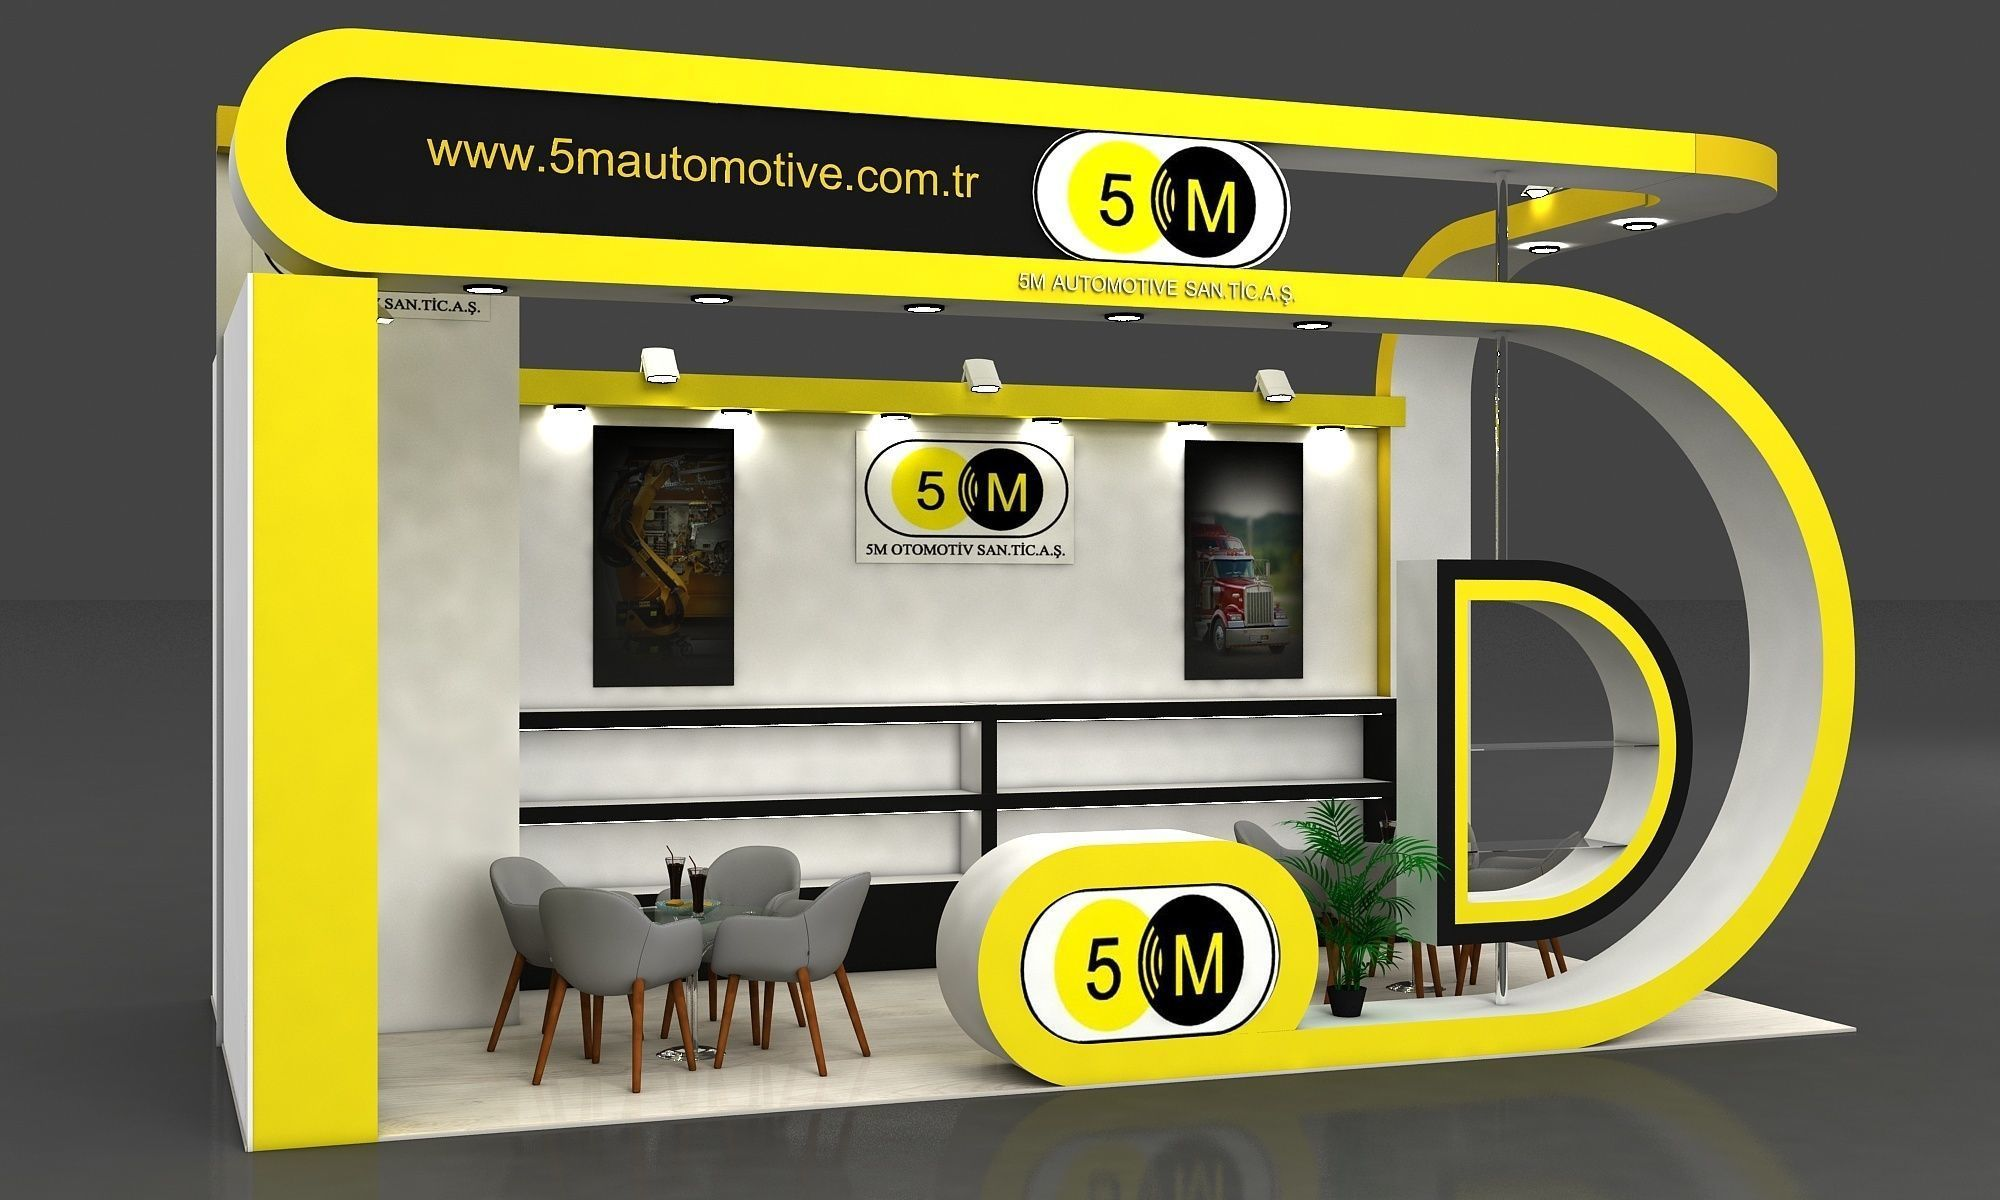 5M Exhibition Stall Size 8 m x 4 m  Height 366 cm